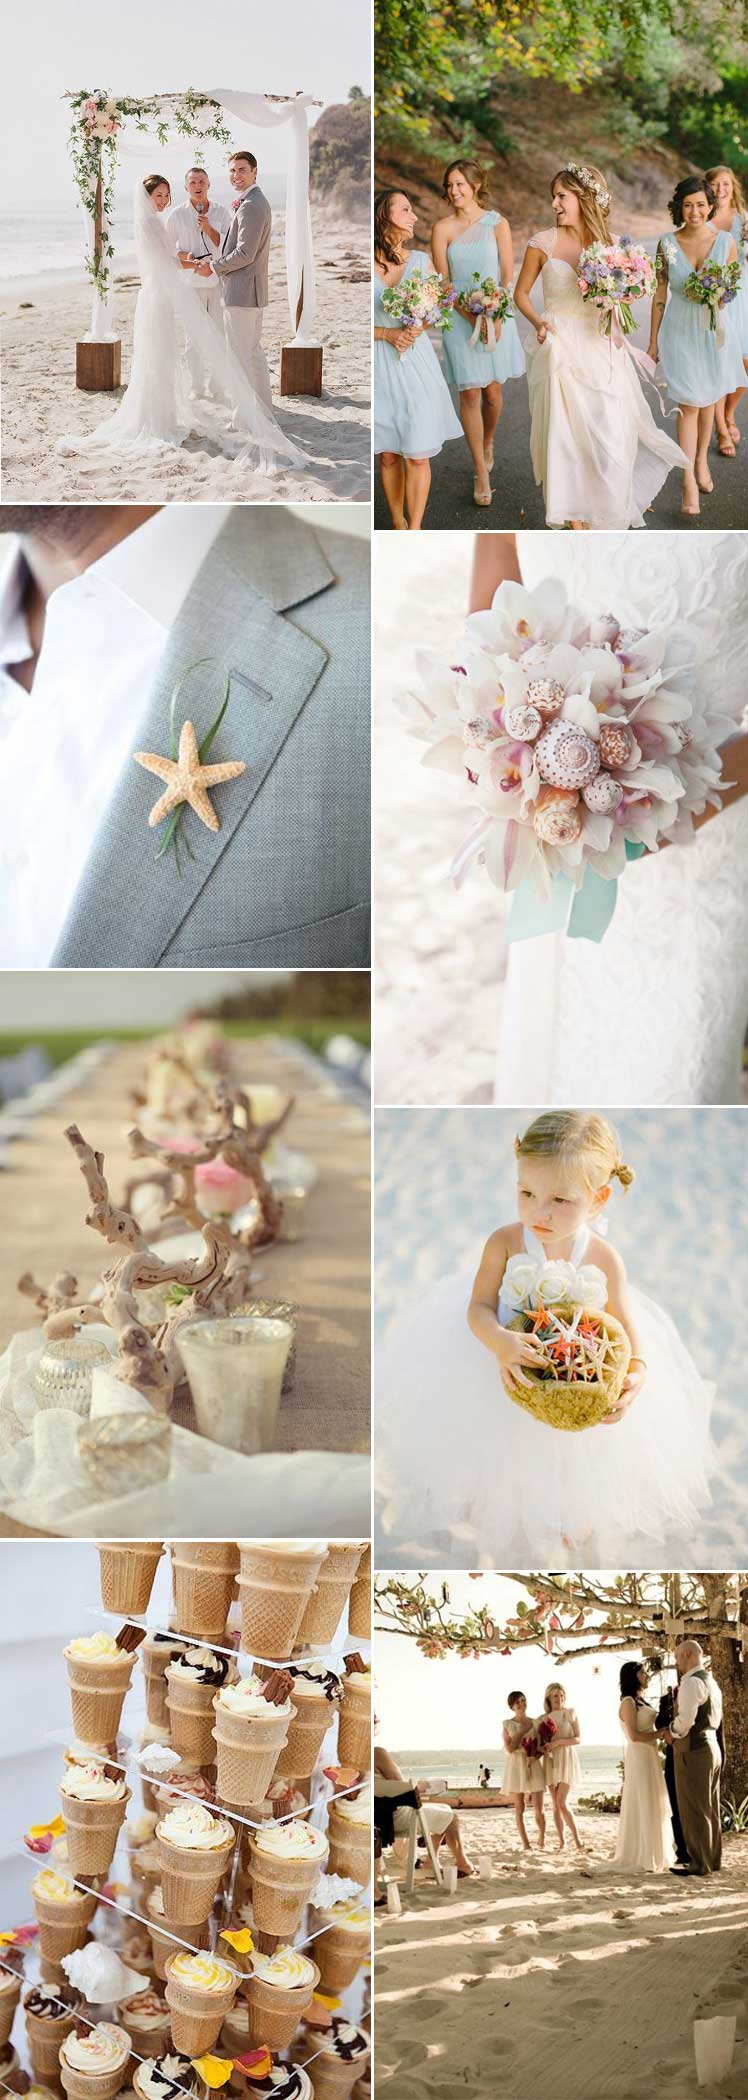 Ideas for marrying on the beach